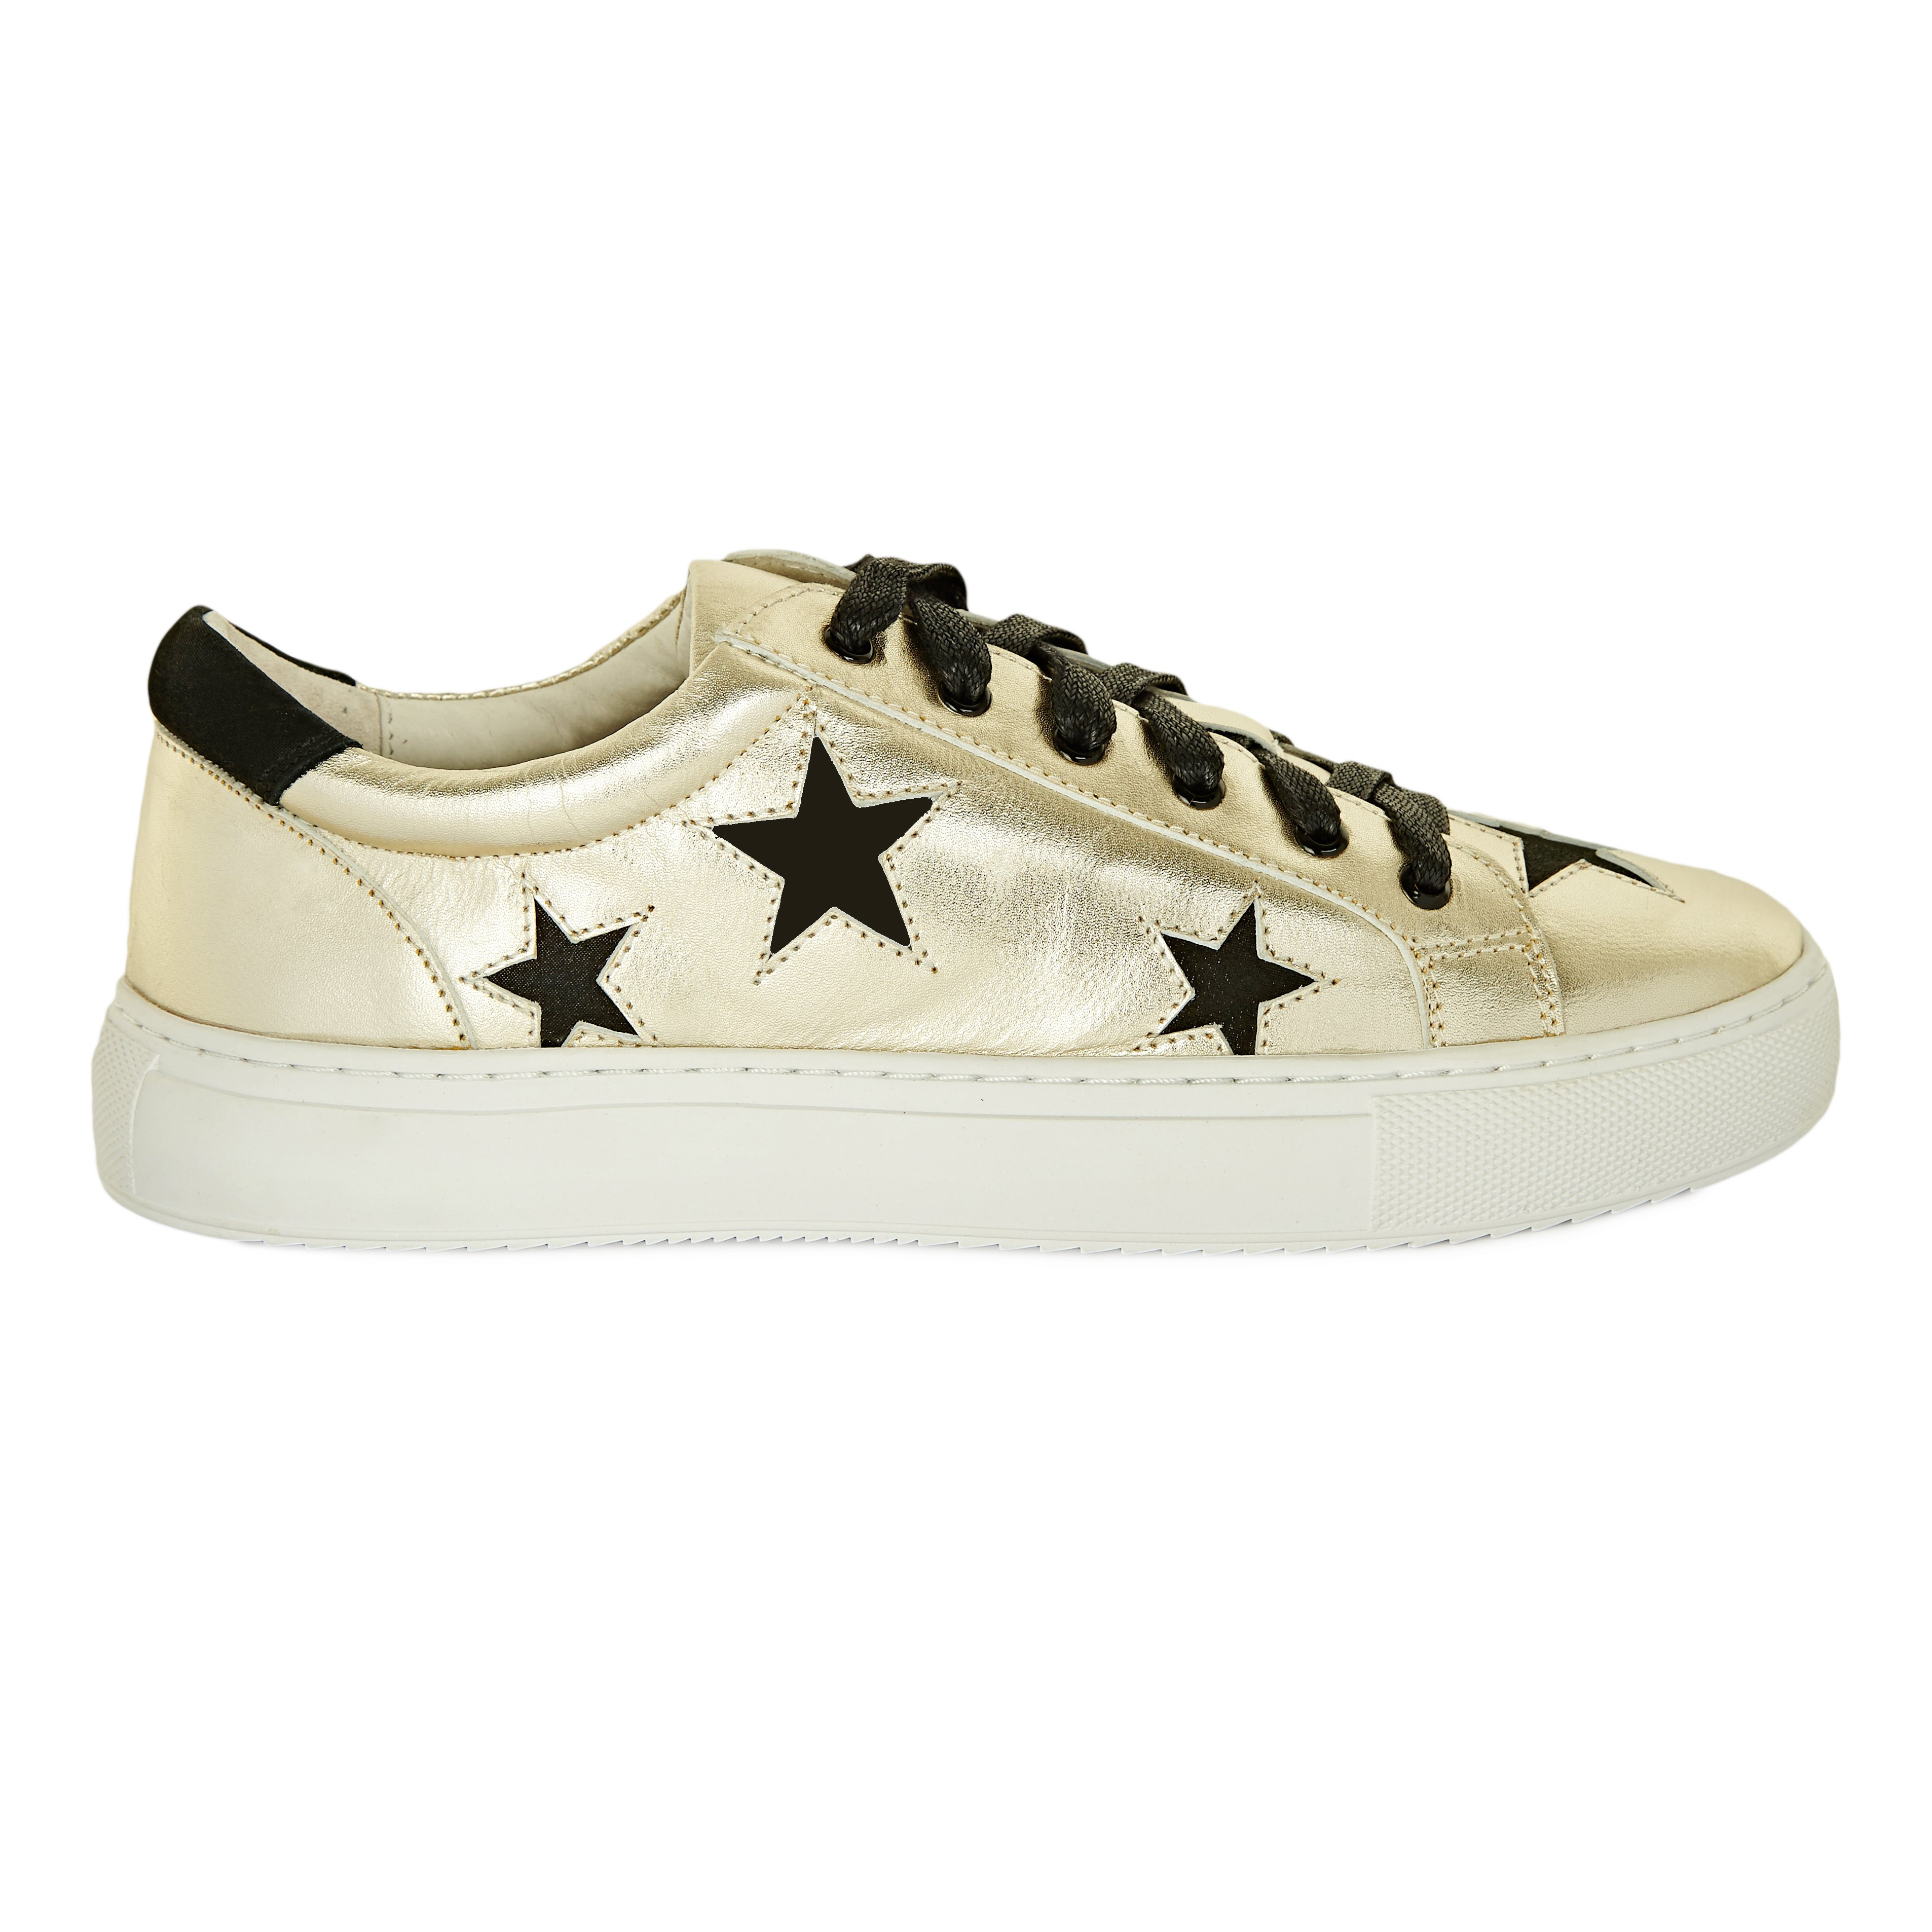 Hoxton - Gold with Black Stars Leather Trainers